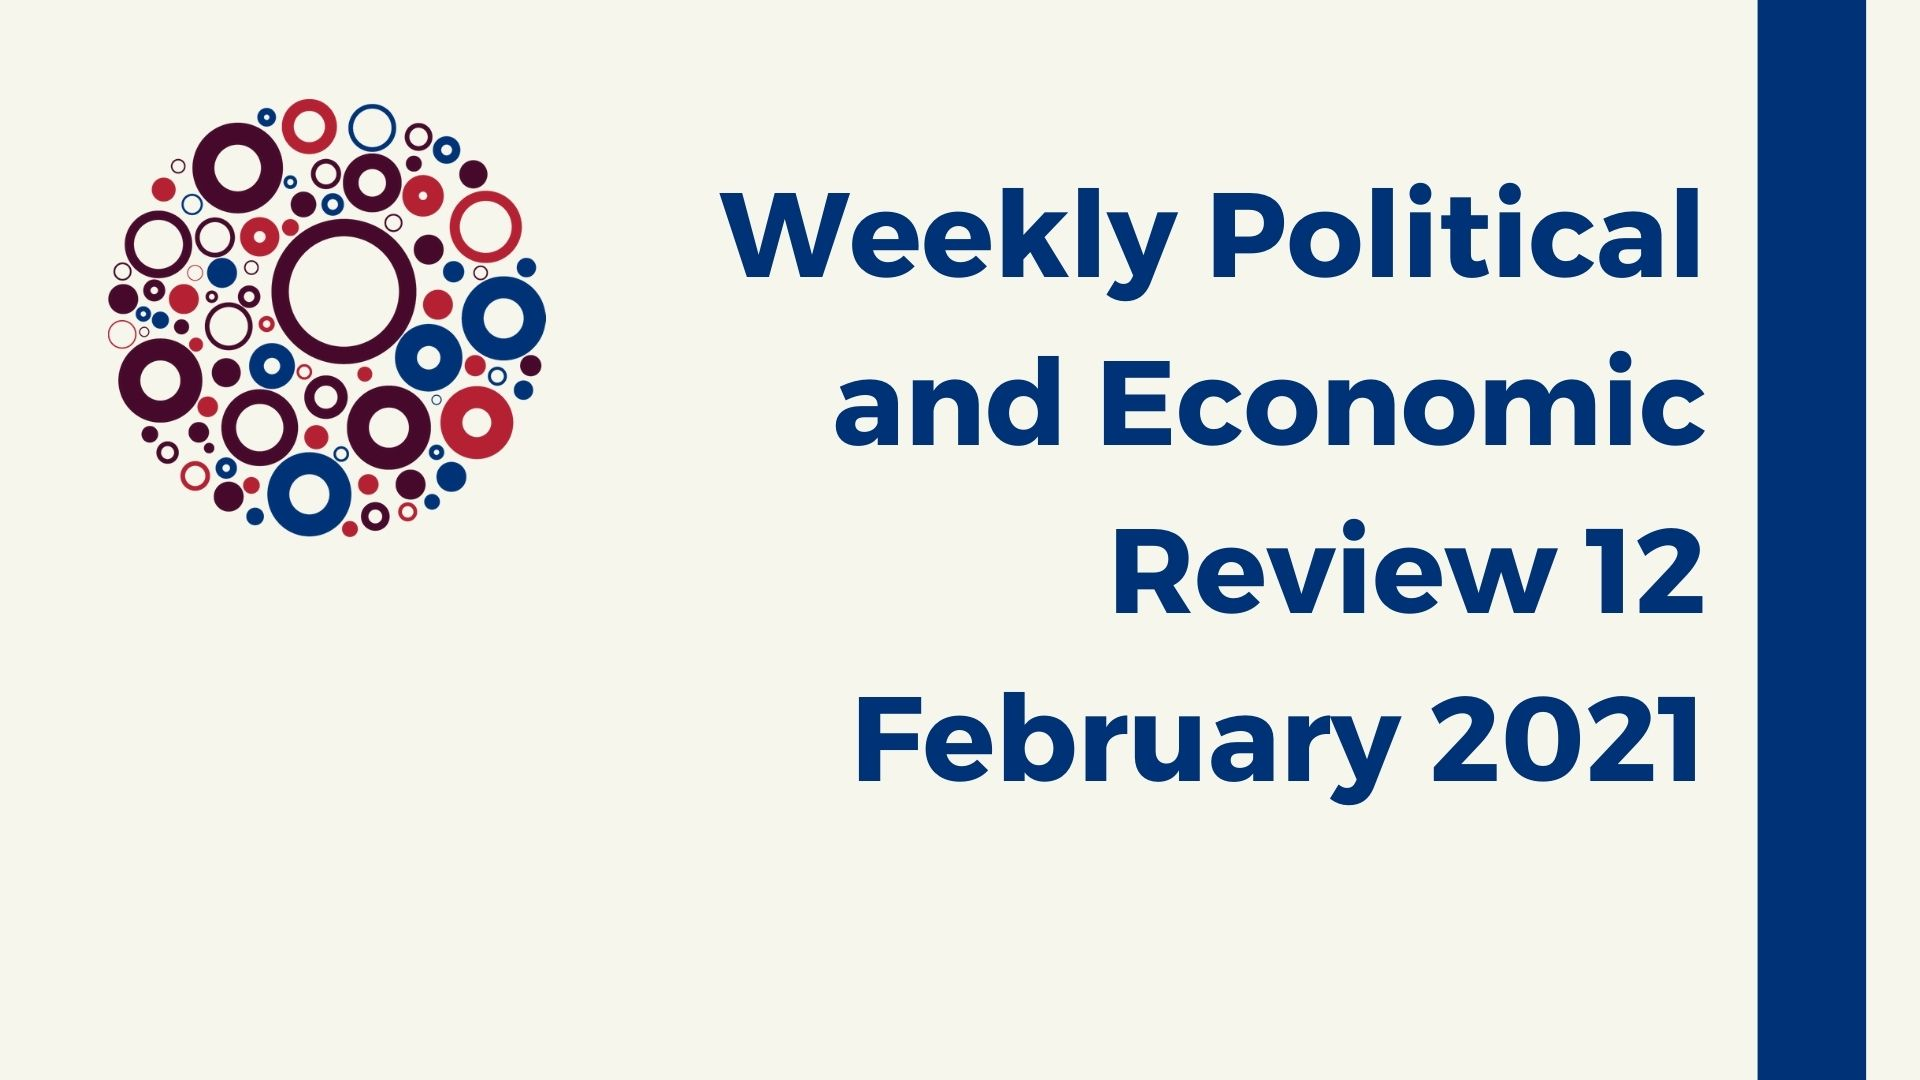 Weekly Political and Economic Review 12 February 2021